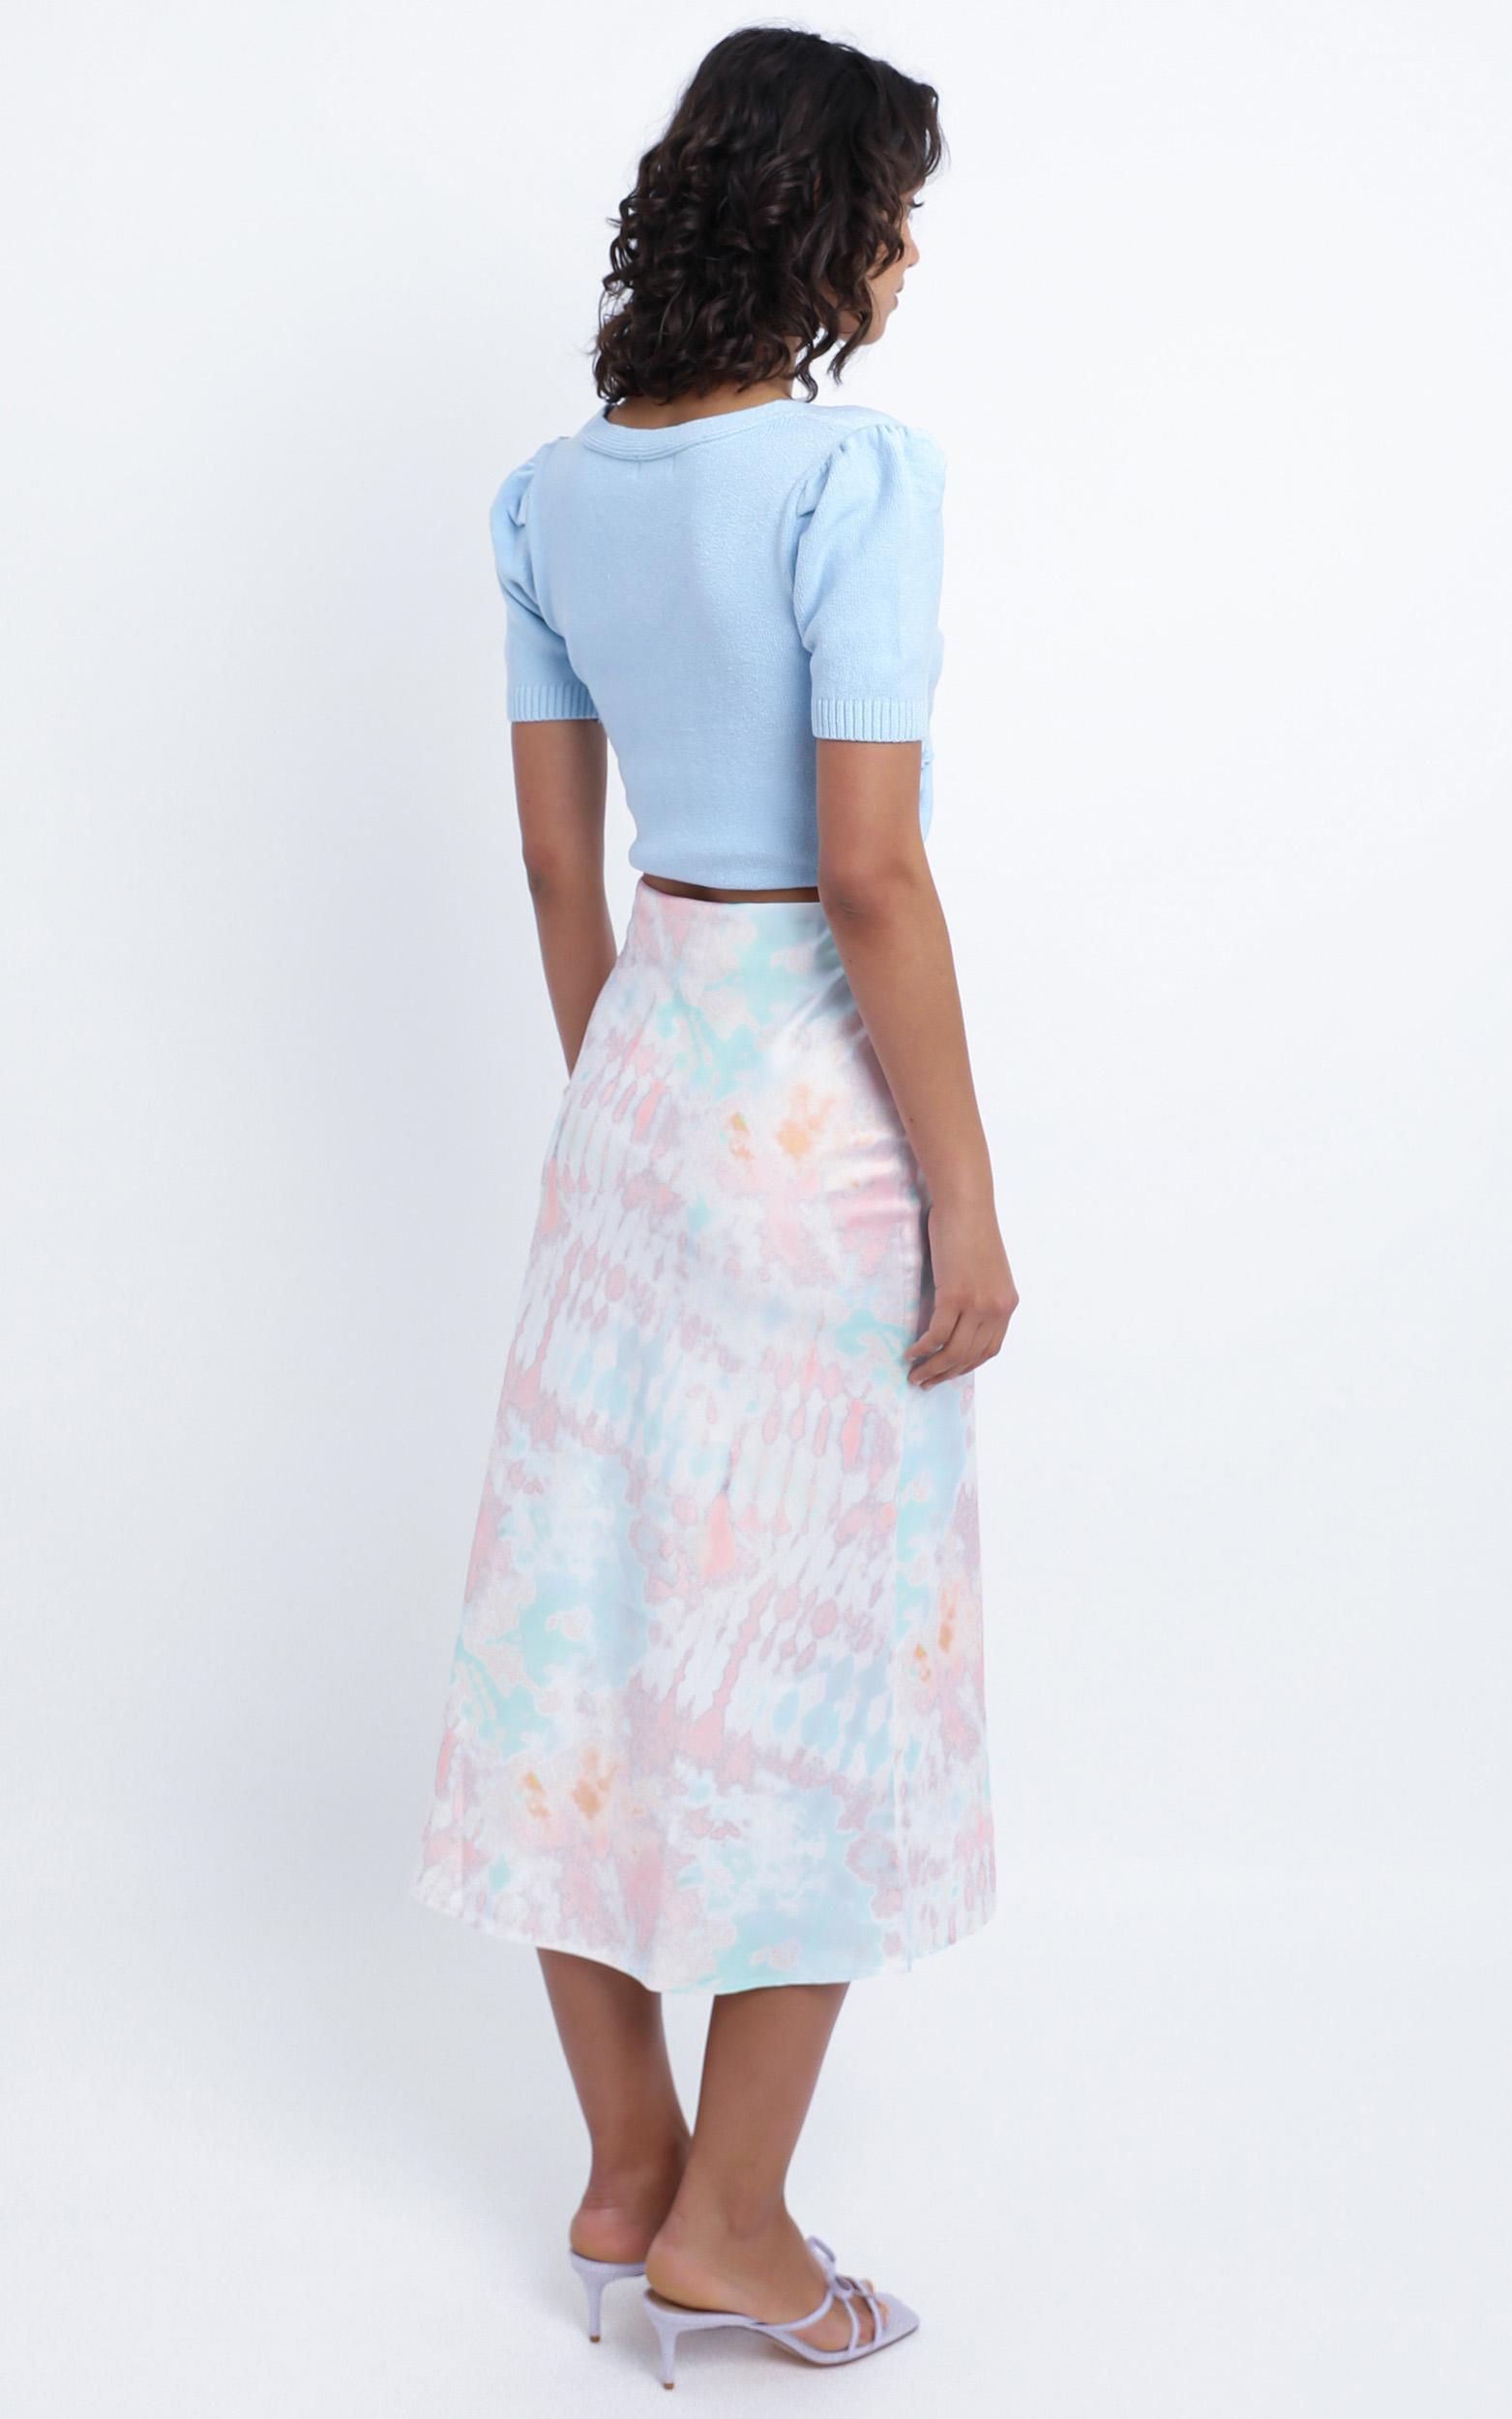 Chamberlain Skirt in Pink Tie Dye - 12 (L), Pink, hi-res image number null